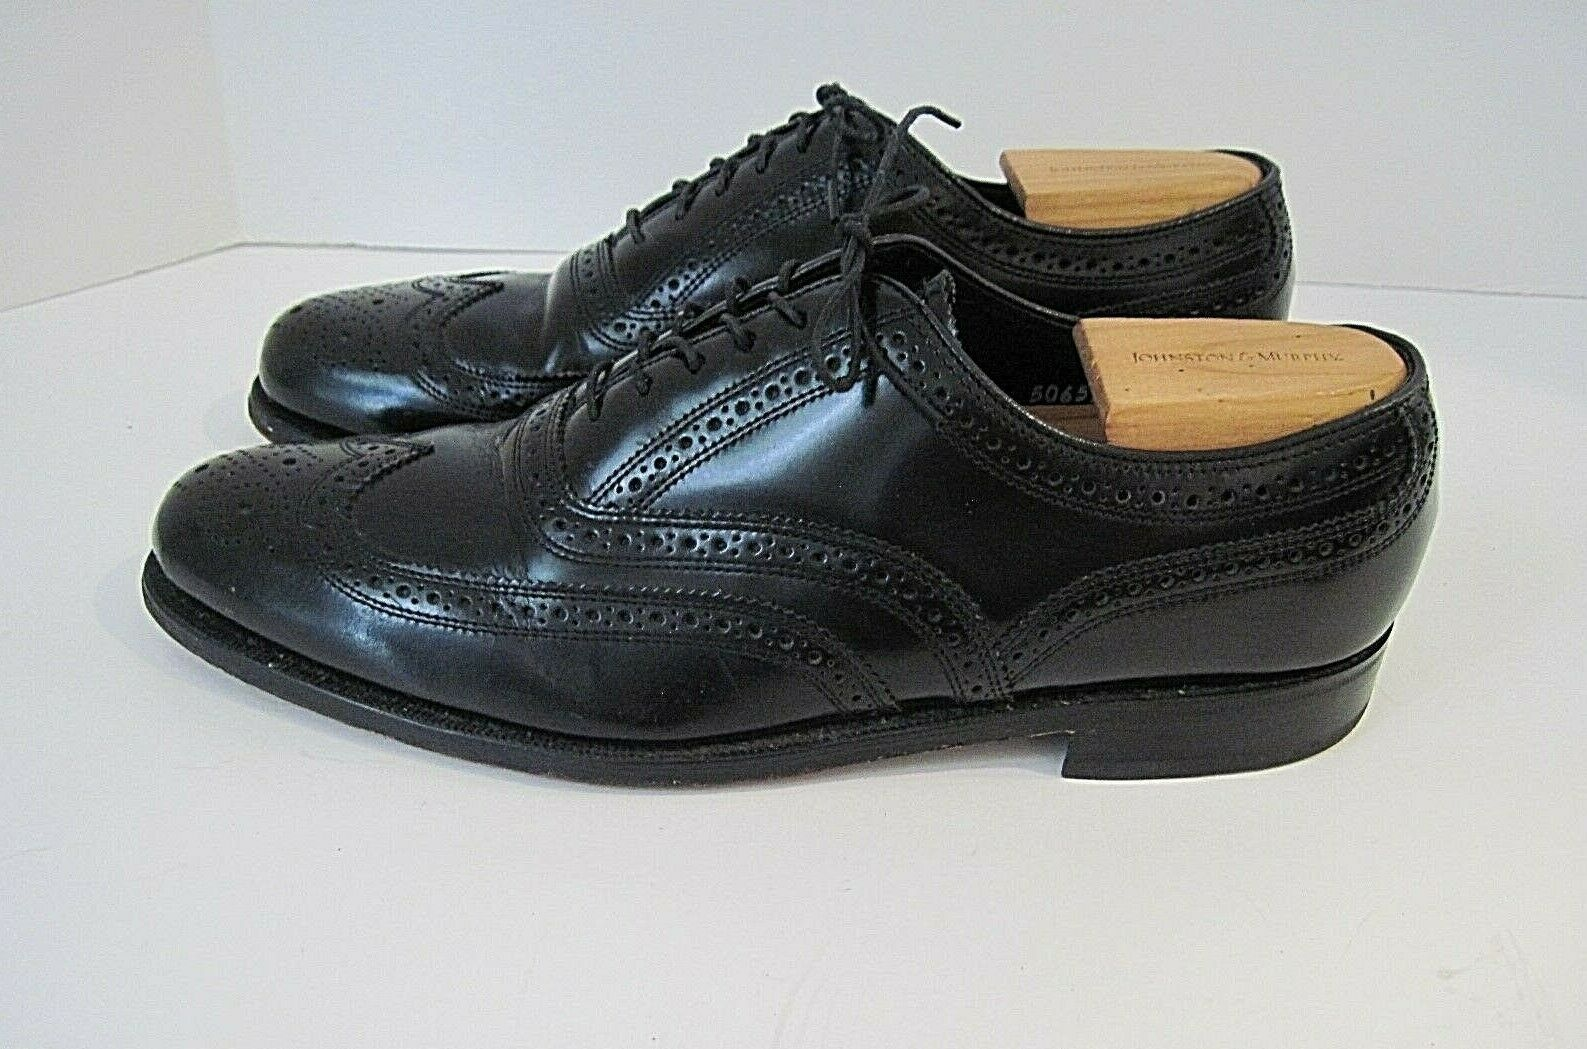 FLORSHEIM Black Leather Wingtip Oxfords Size 9 1 2D